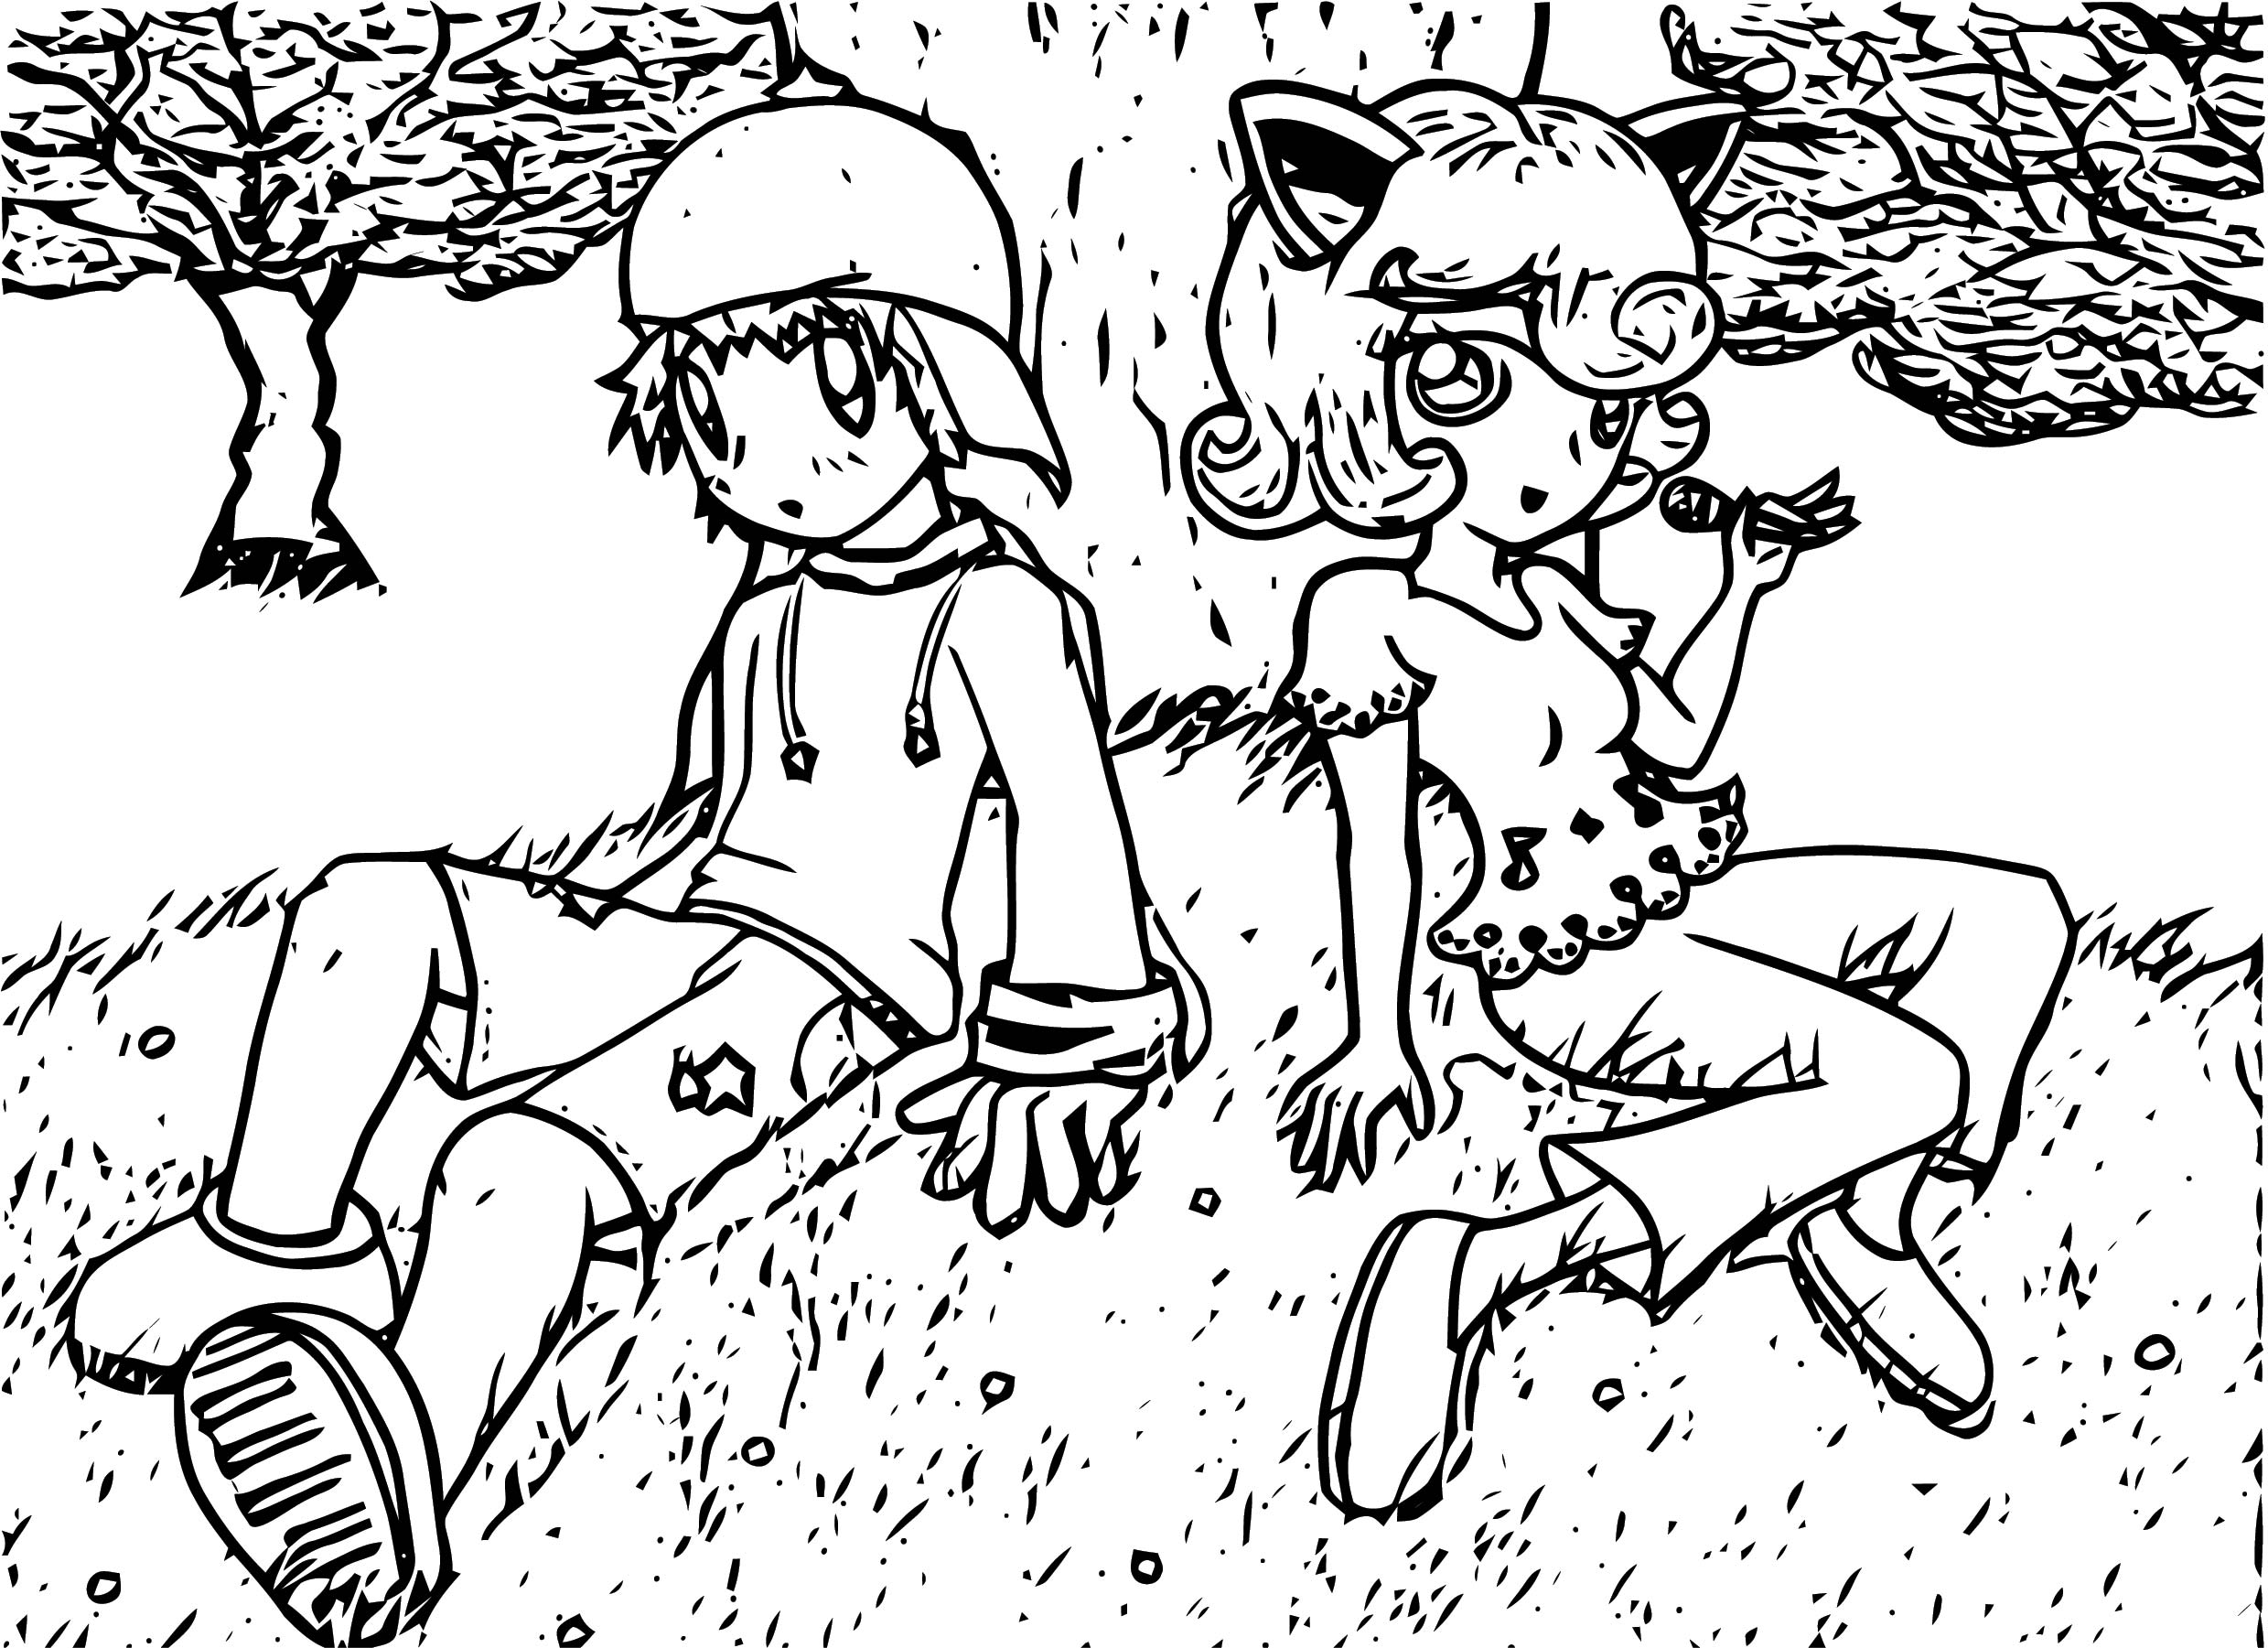 Kirby X Jigglypuff Girl And Boy Coloring Page